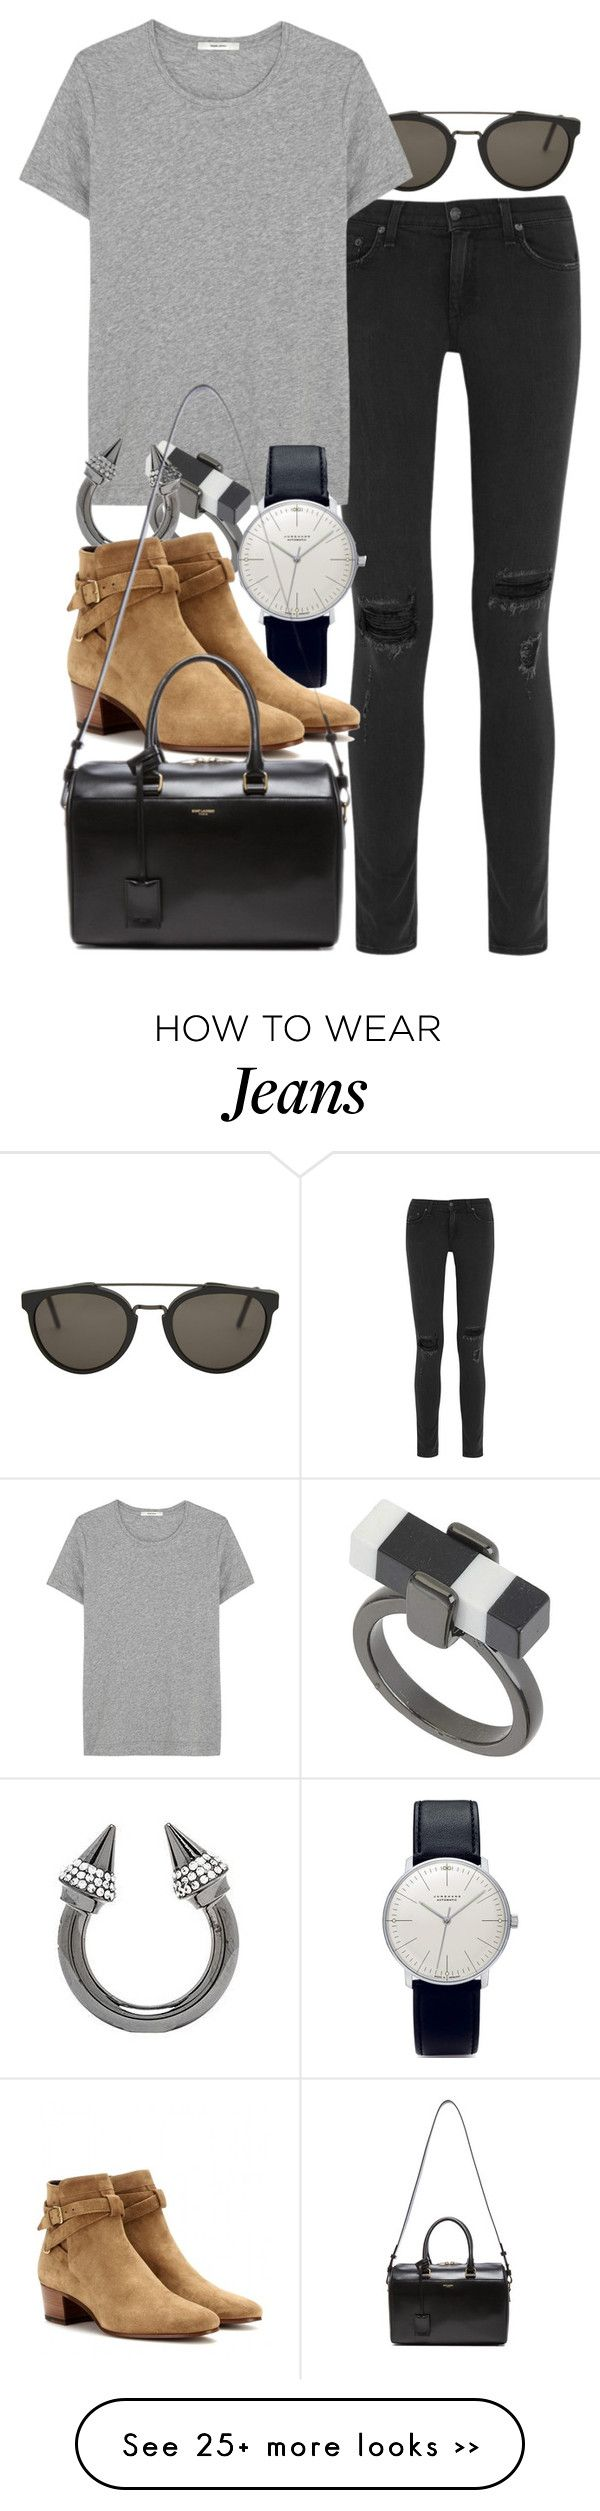 """Untitled #6874"" by nikka-phillips on Polyvore"